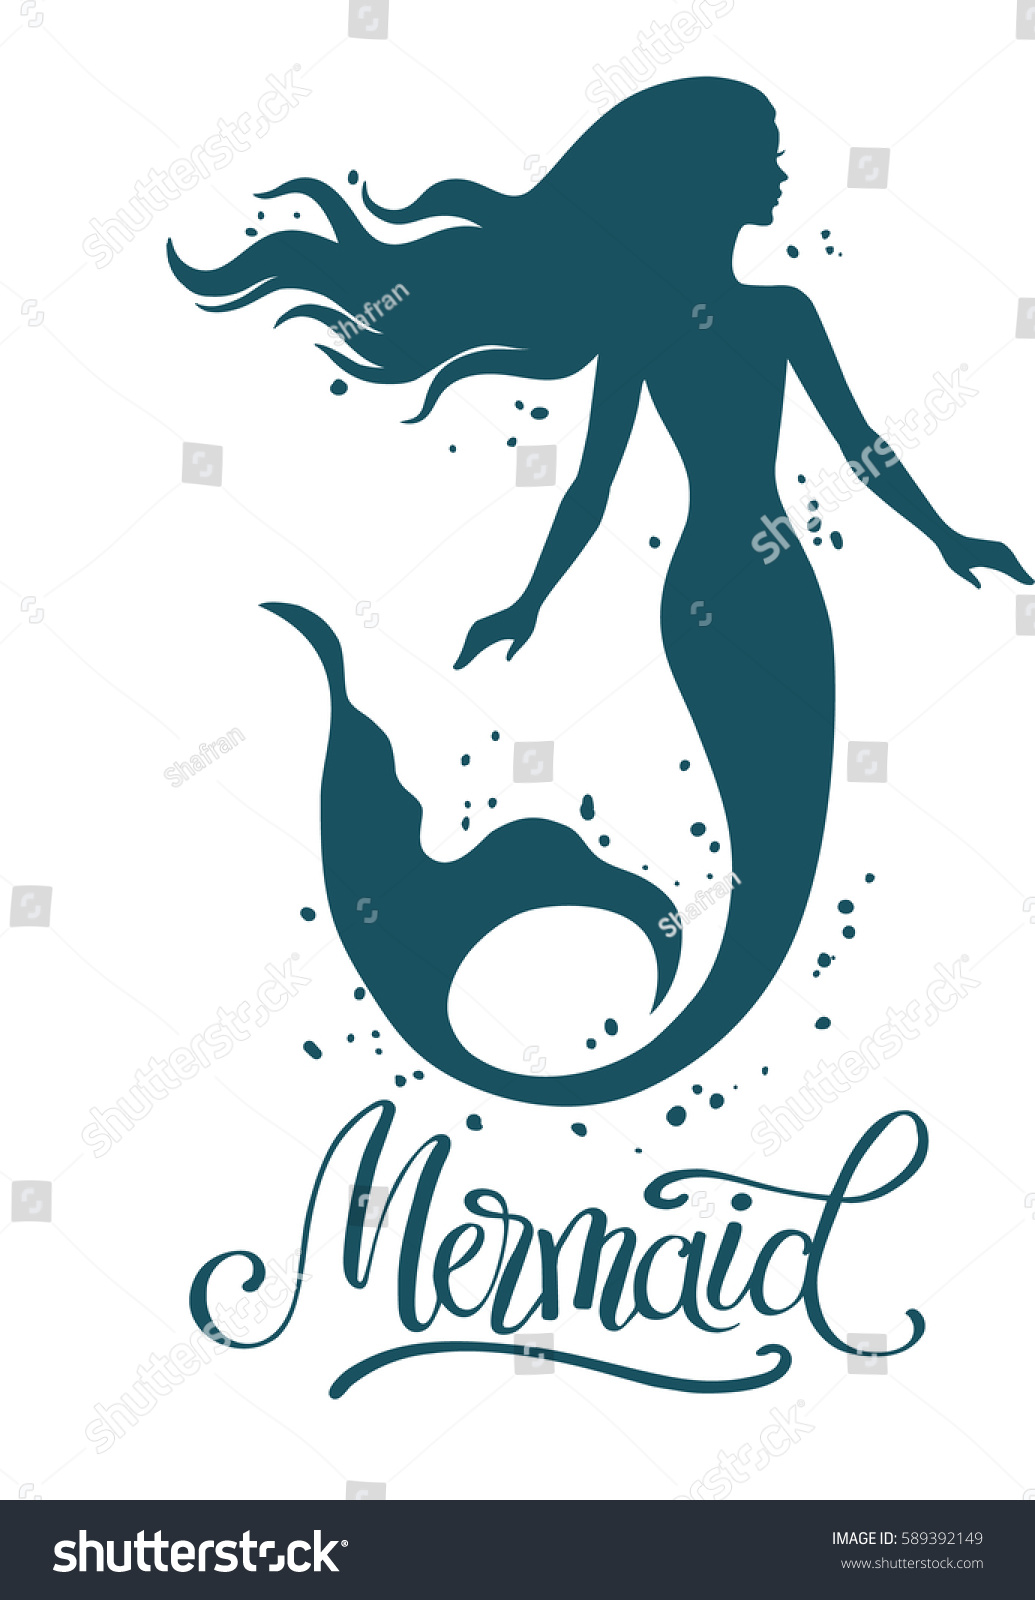 Hand painted mermaid watercolor vector silhouette stock vector - Mermaid Hand Drawn Vector Silhouette Illustration Isolated On White Background